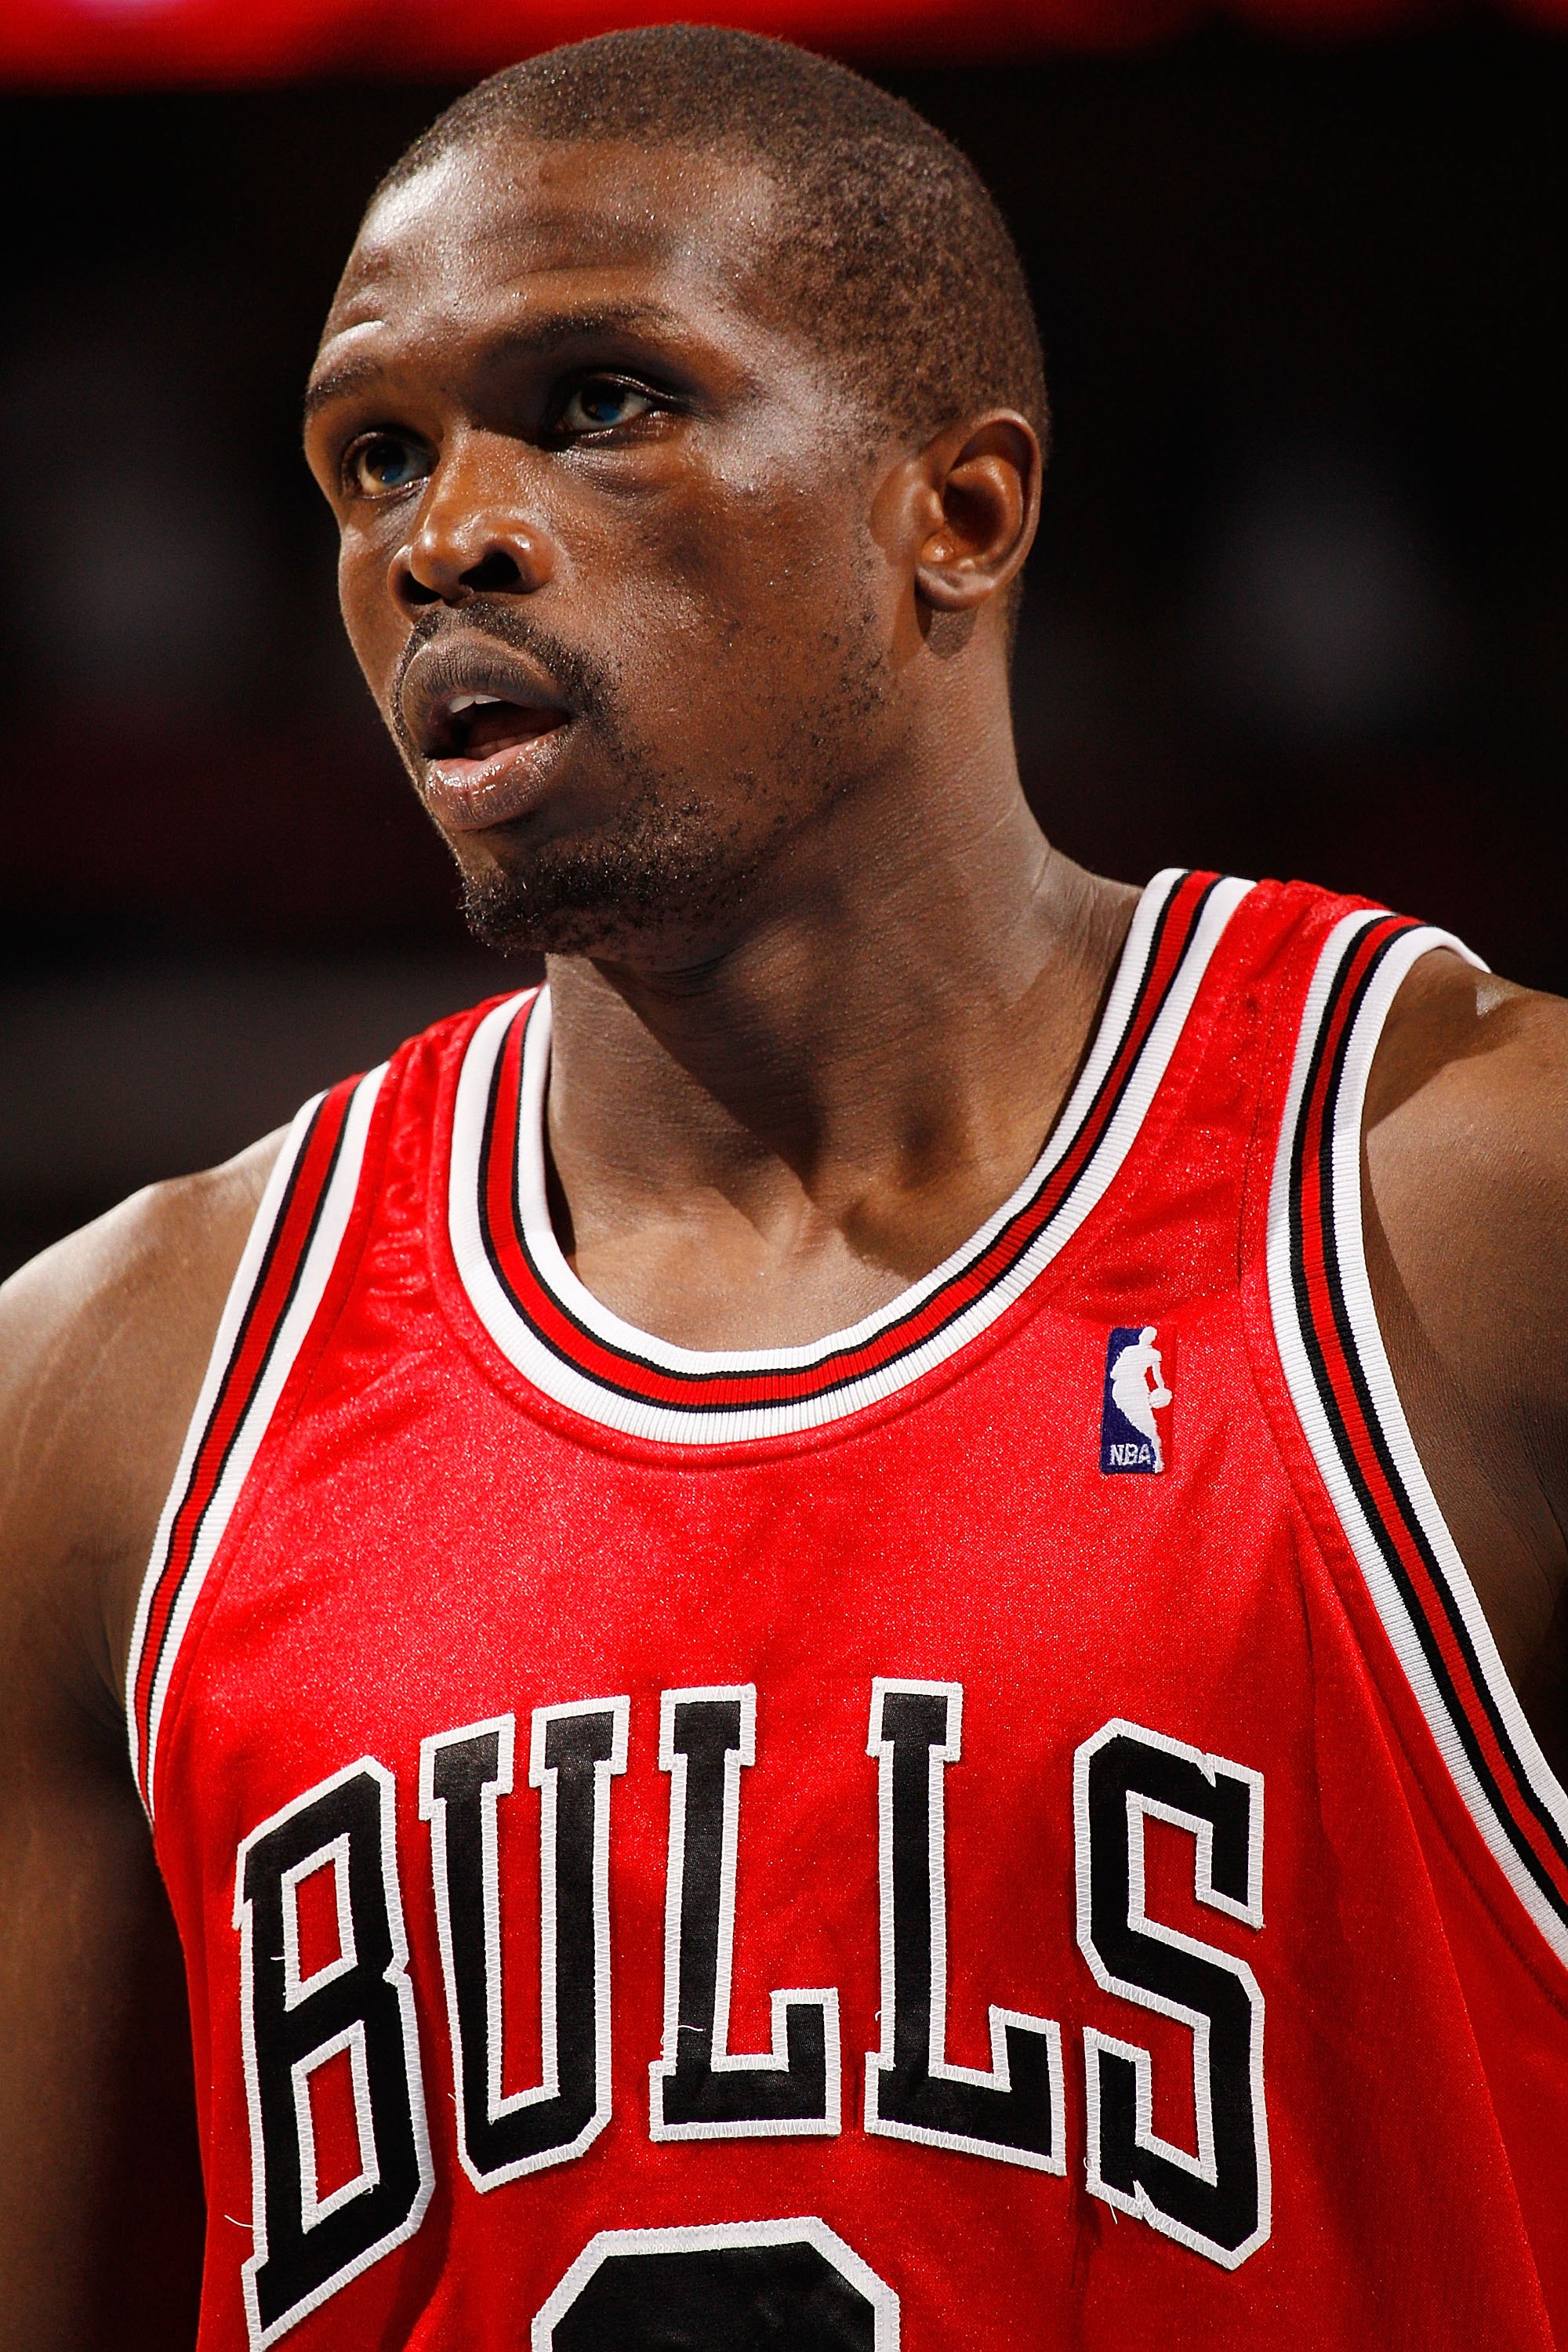 edfb9663f2d26d NEW ORLEANS - JANUARY 29  Luol Deng  9 of the Chicago Bulls during the